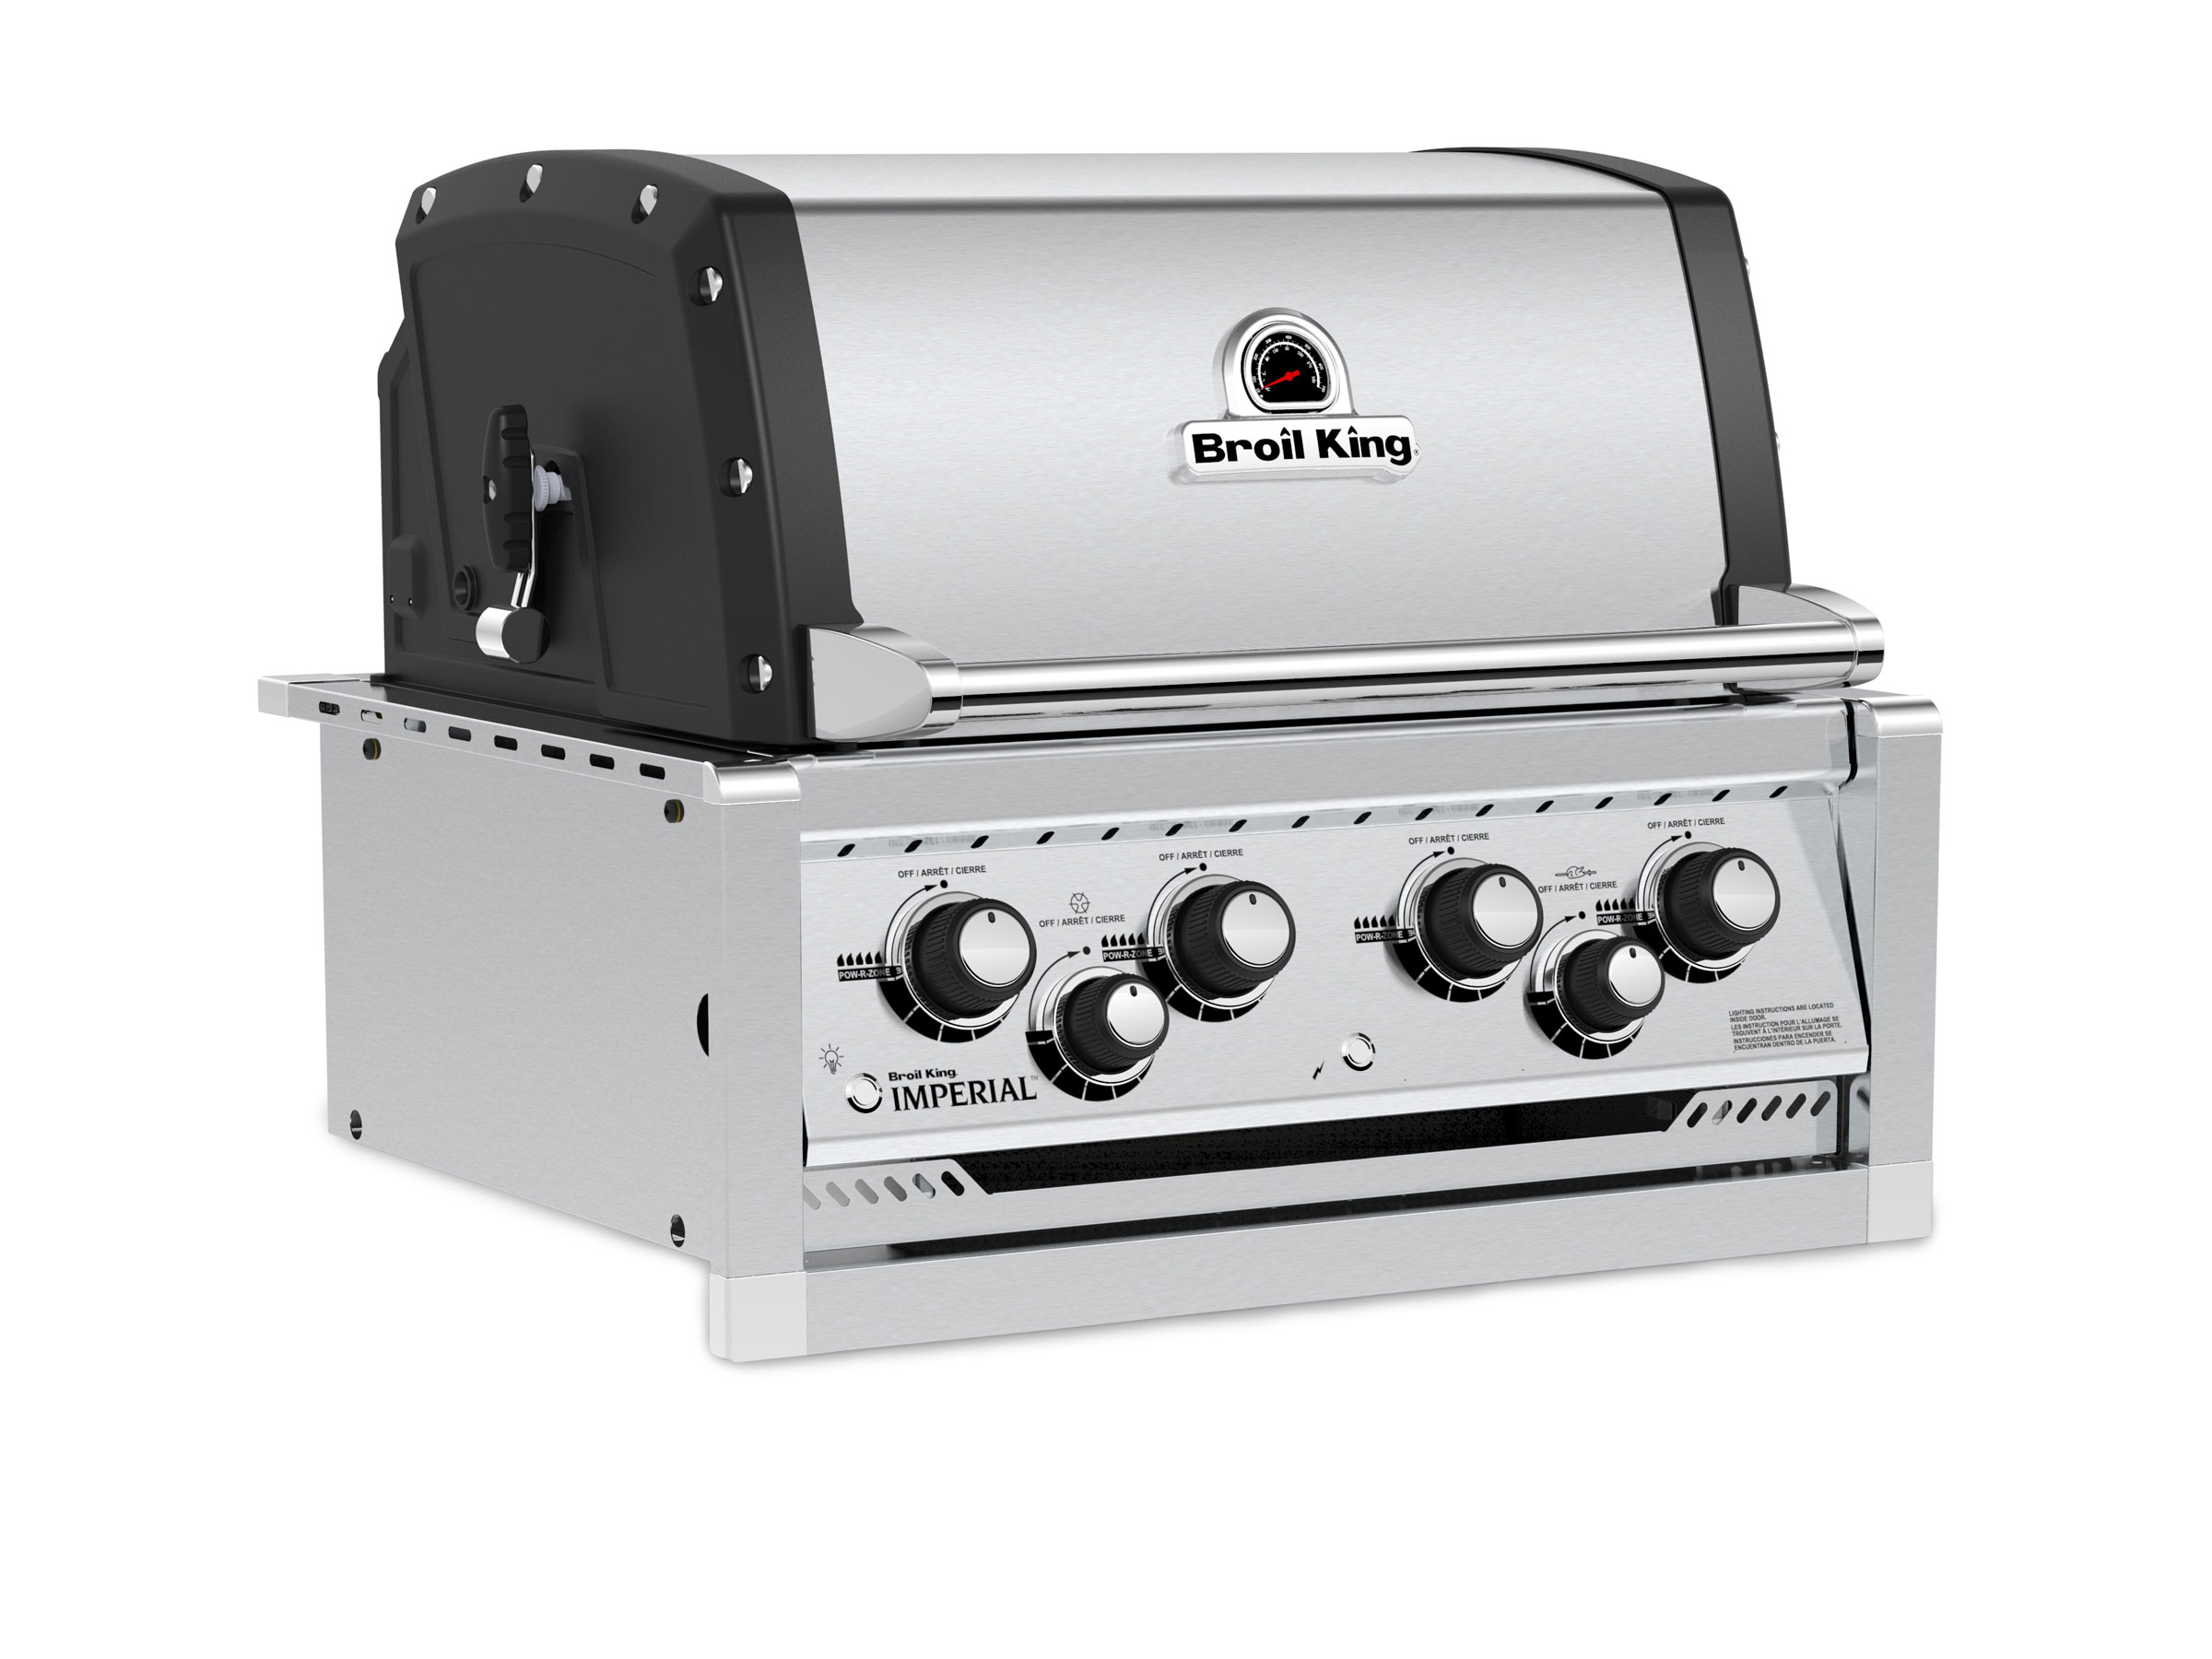 Outdoor Küche Broil King Imperial 490 Pro Built In Head